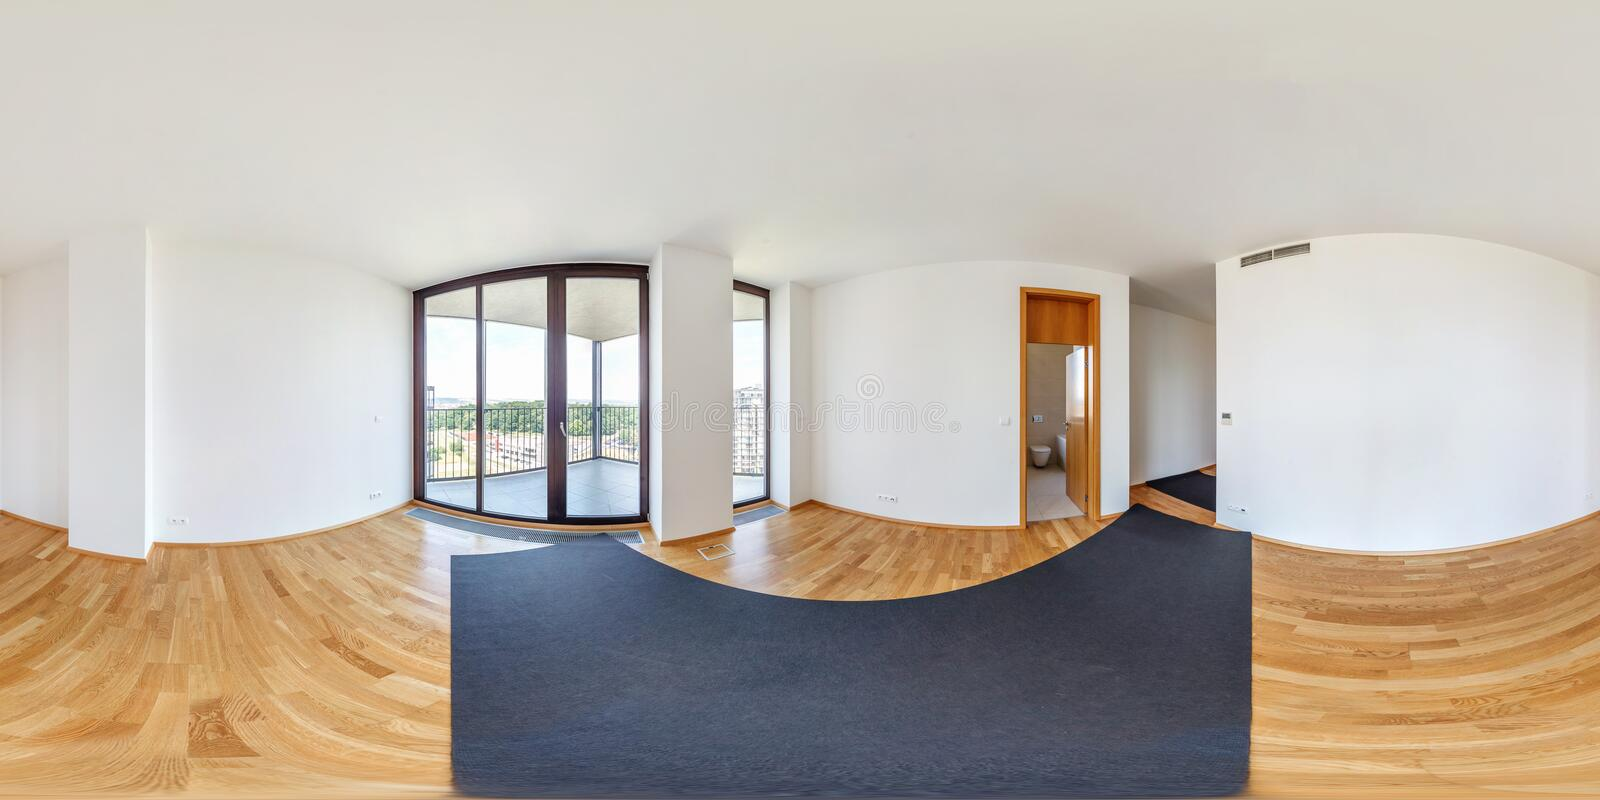 Panorama 360 view in modern white empty loft apartment interior of living room hall, full  seamless hdri 360 degrees angle view. Panorama in equirectangular stock image